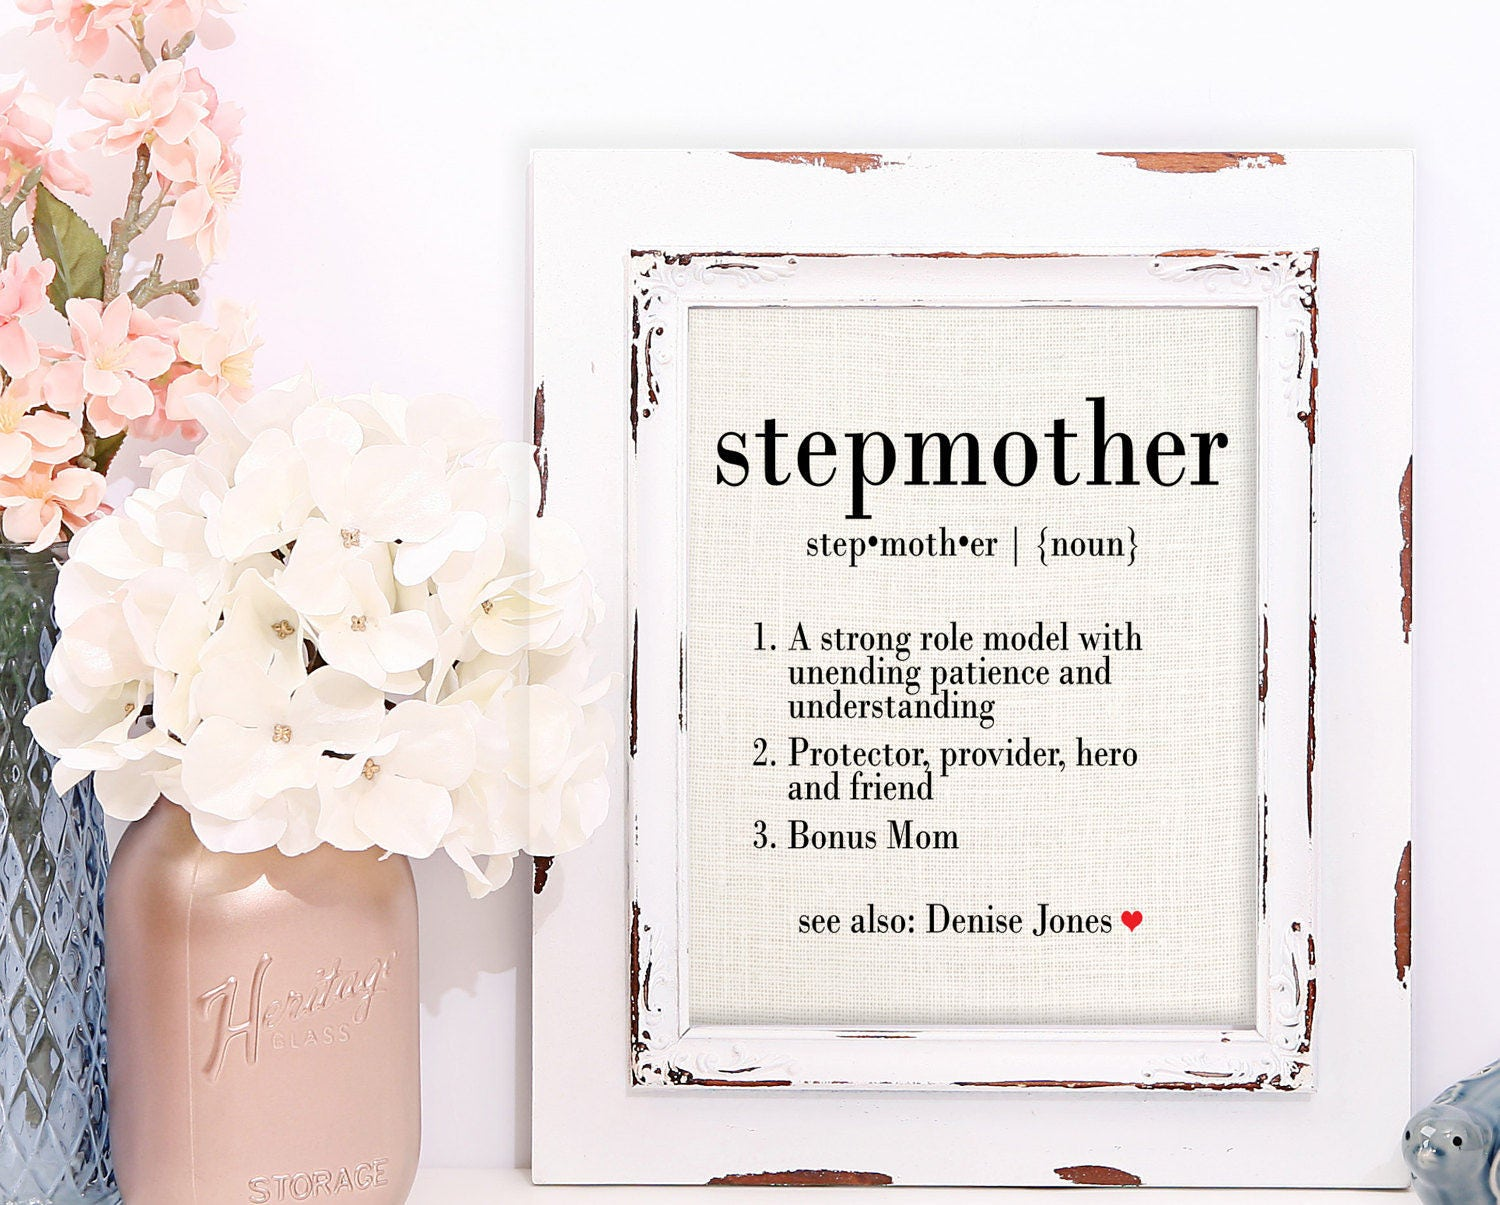 Wedding Gifts For Stepmom: Stepmother Gifts Definition Of Stepmother